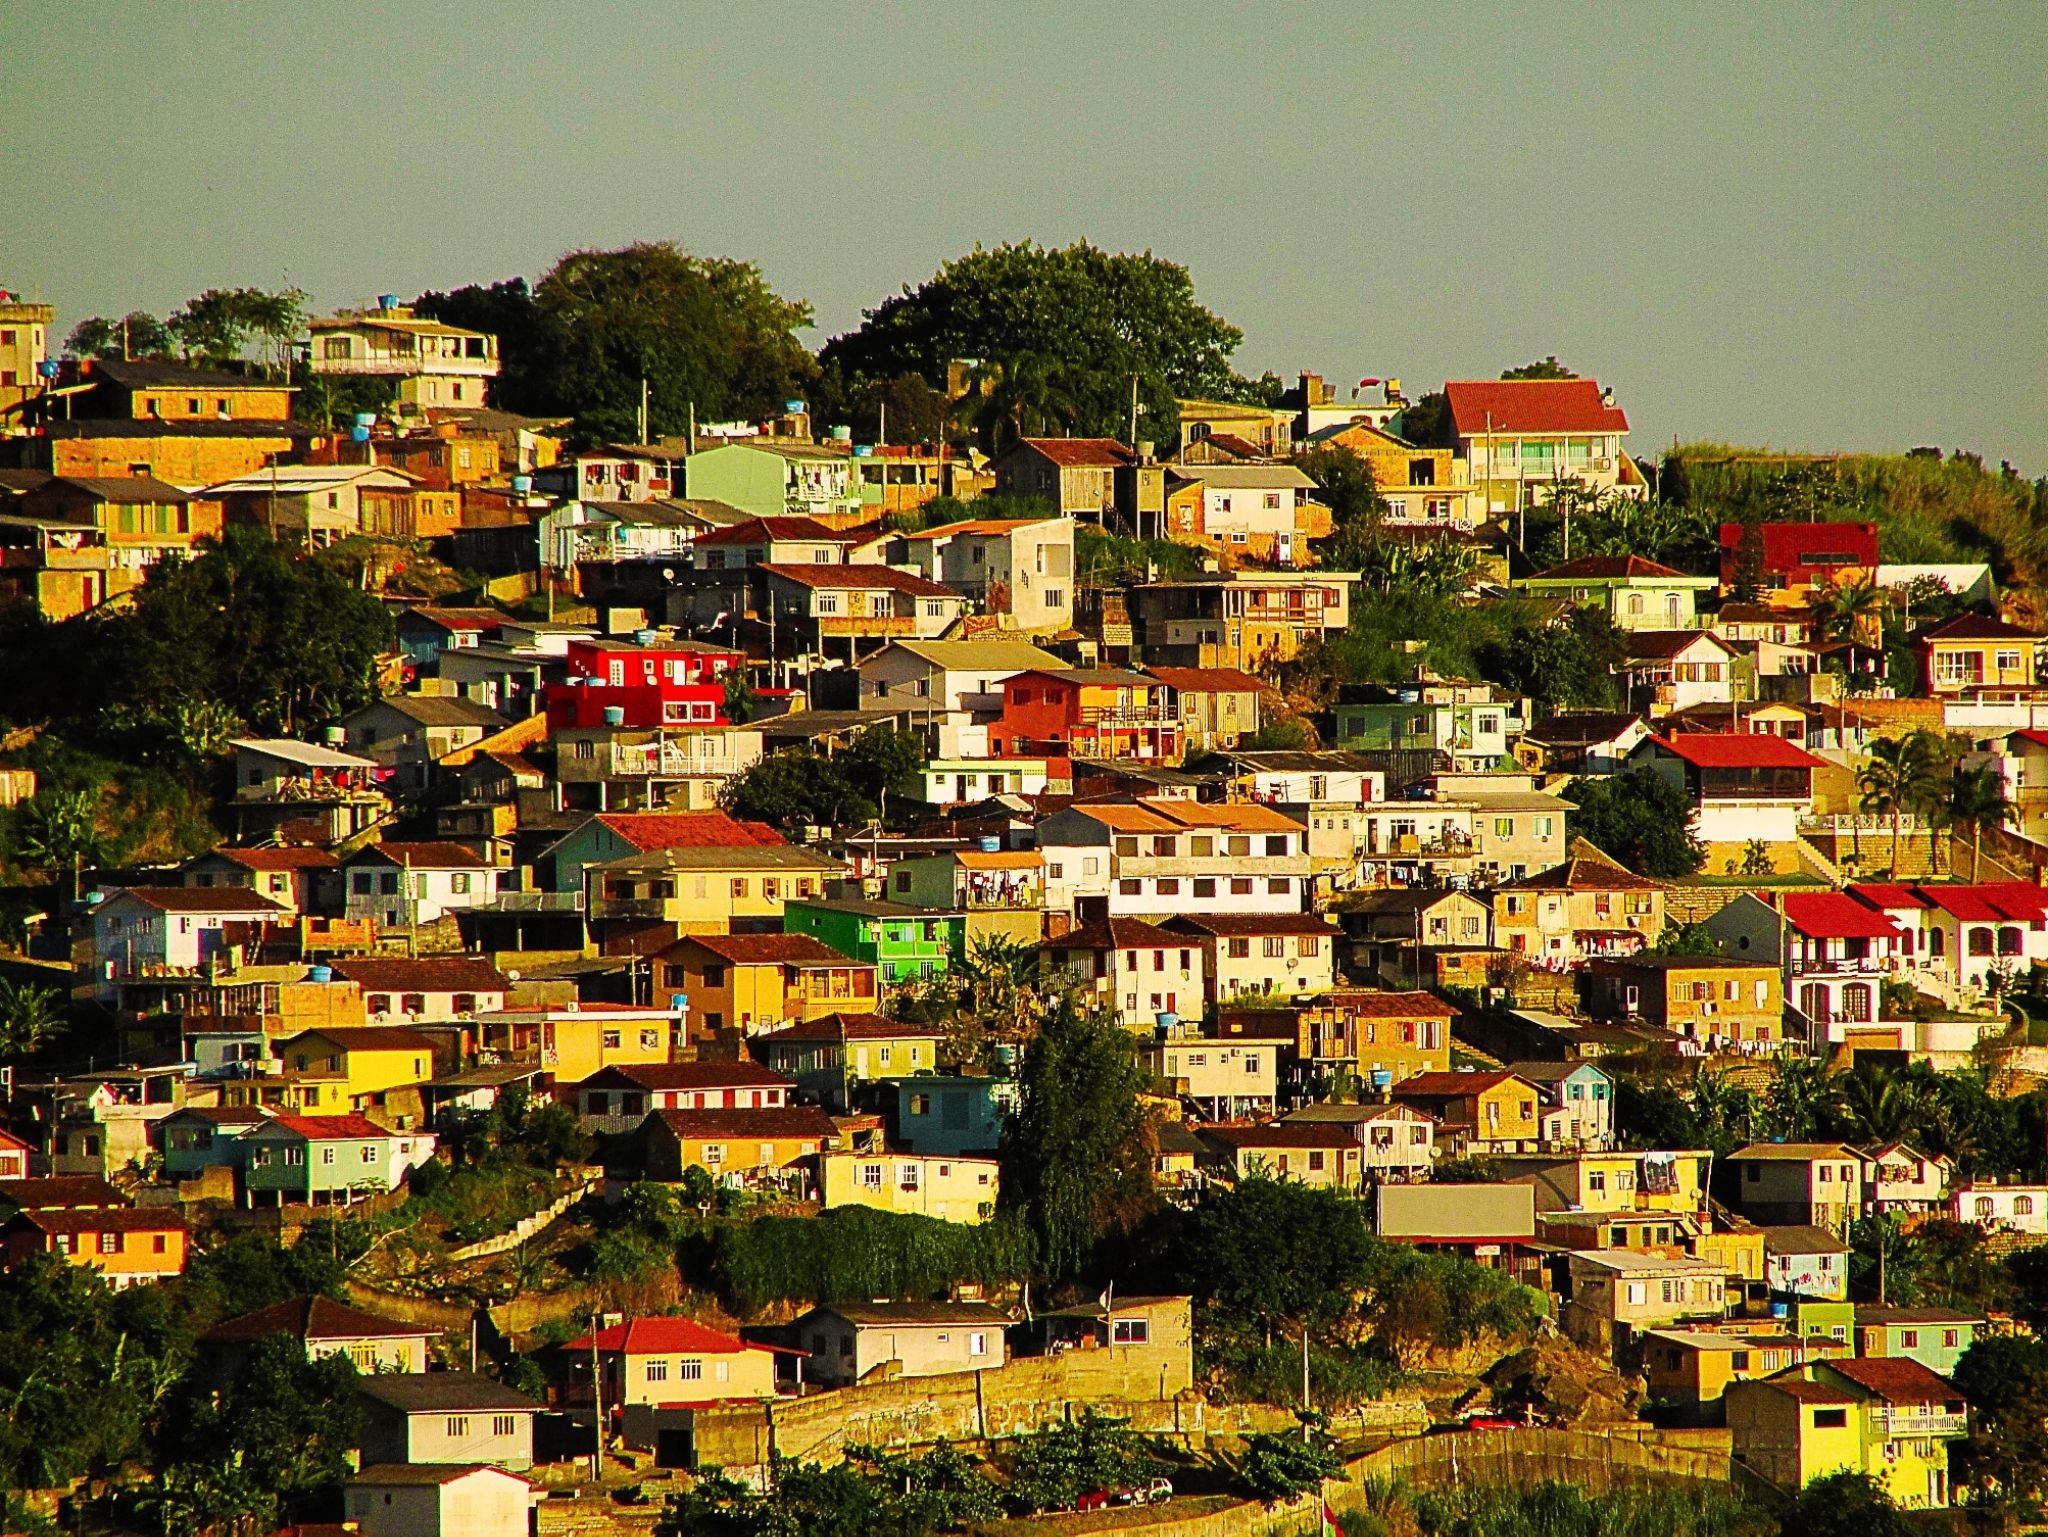 Houses at sunset - Hill in Florianopolis - Santa Catarina - Brazil by valcir.siqueira.7